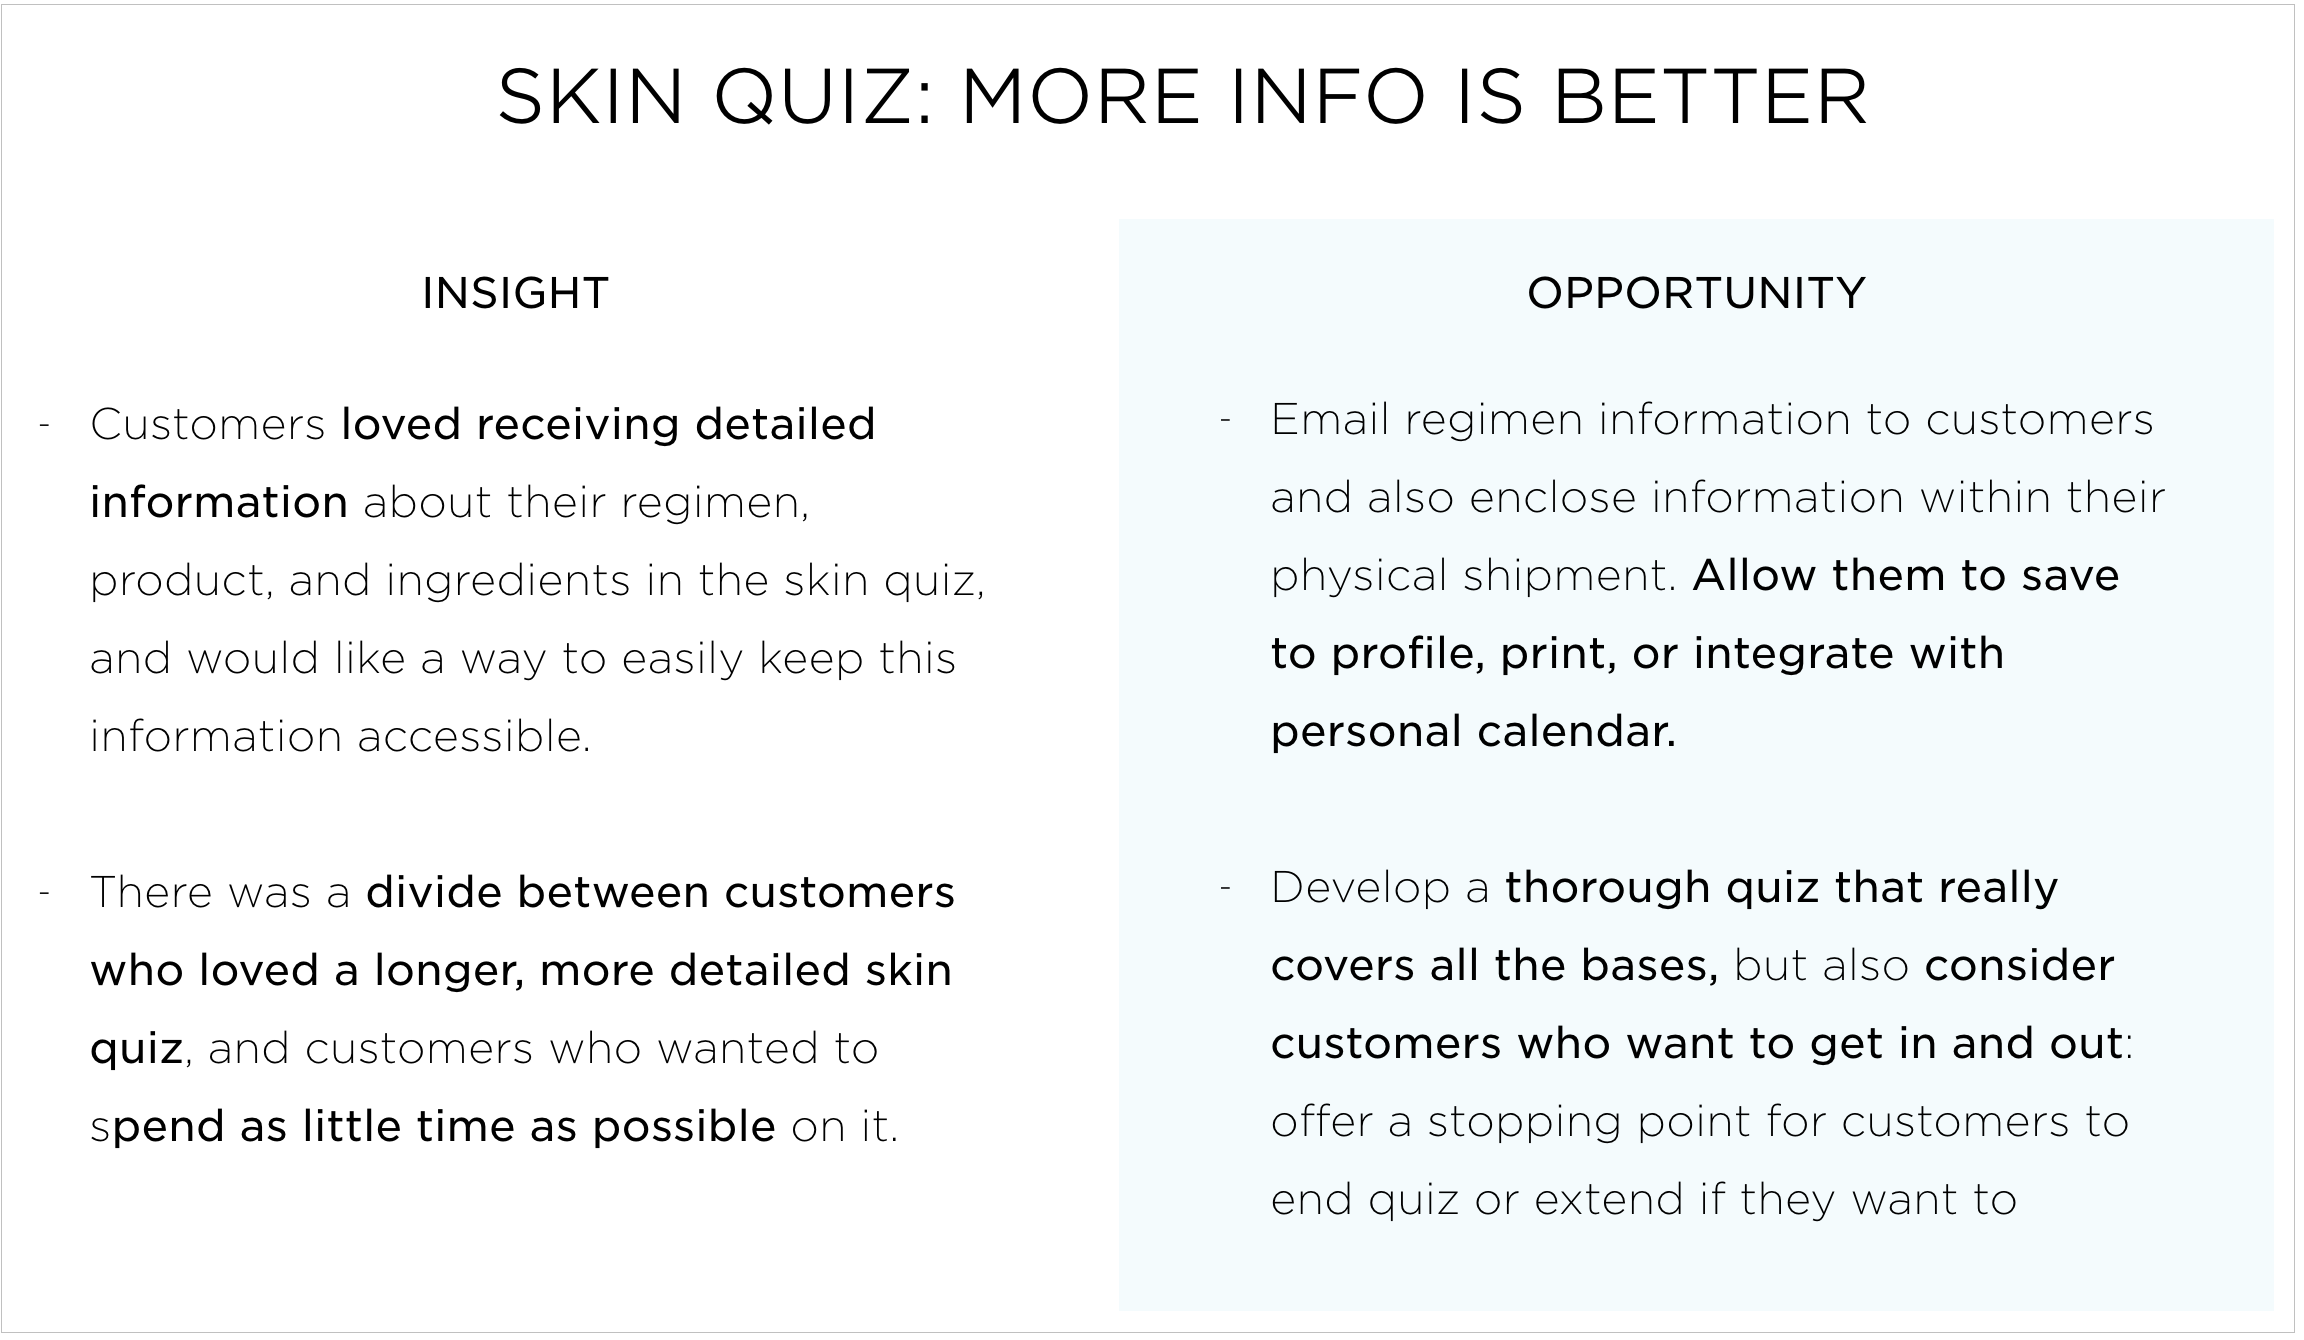 Selected feedback on the skin quiz